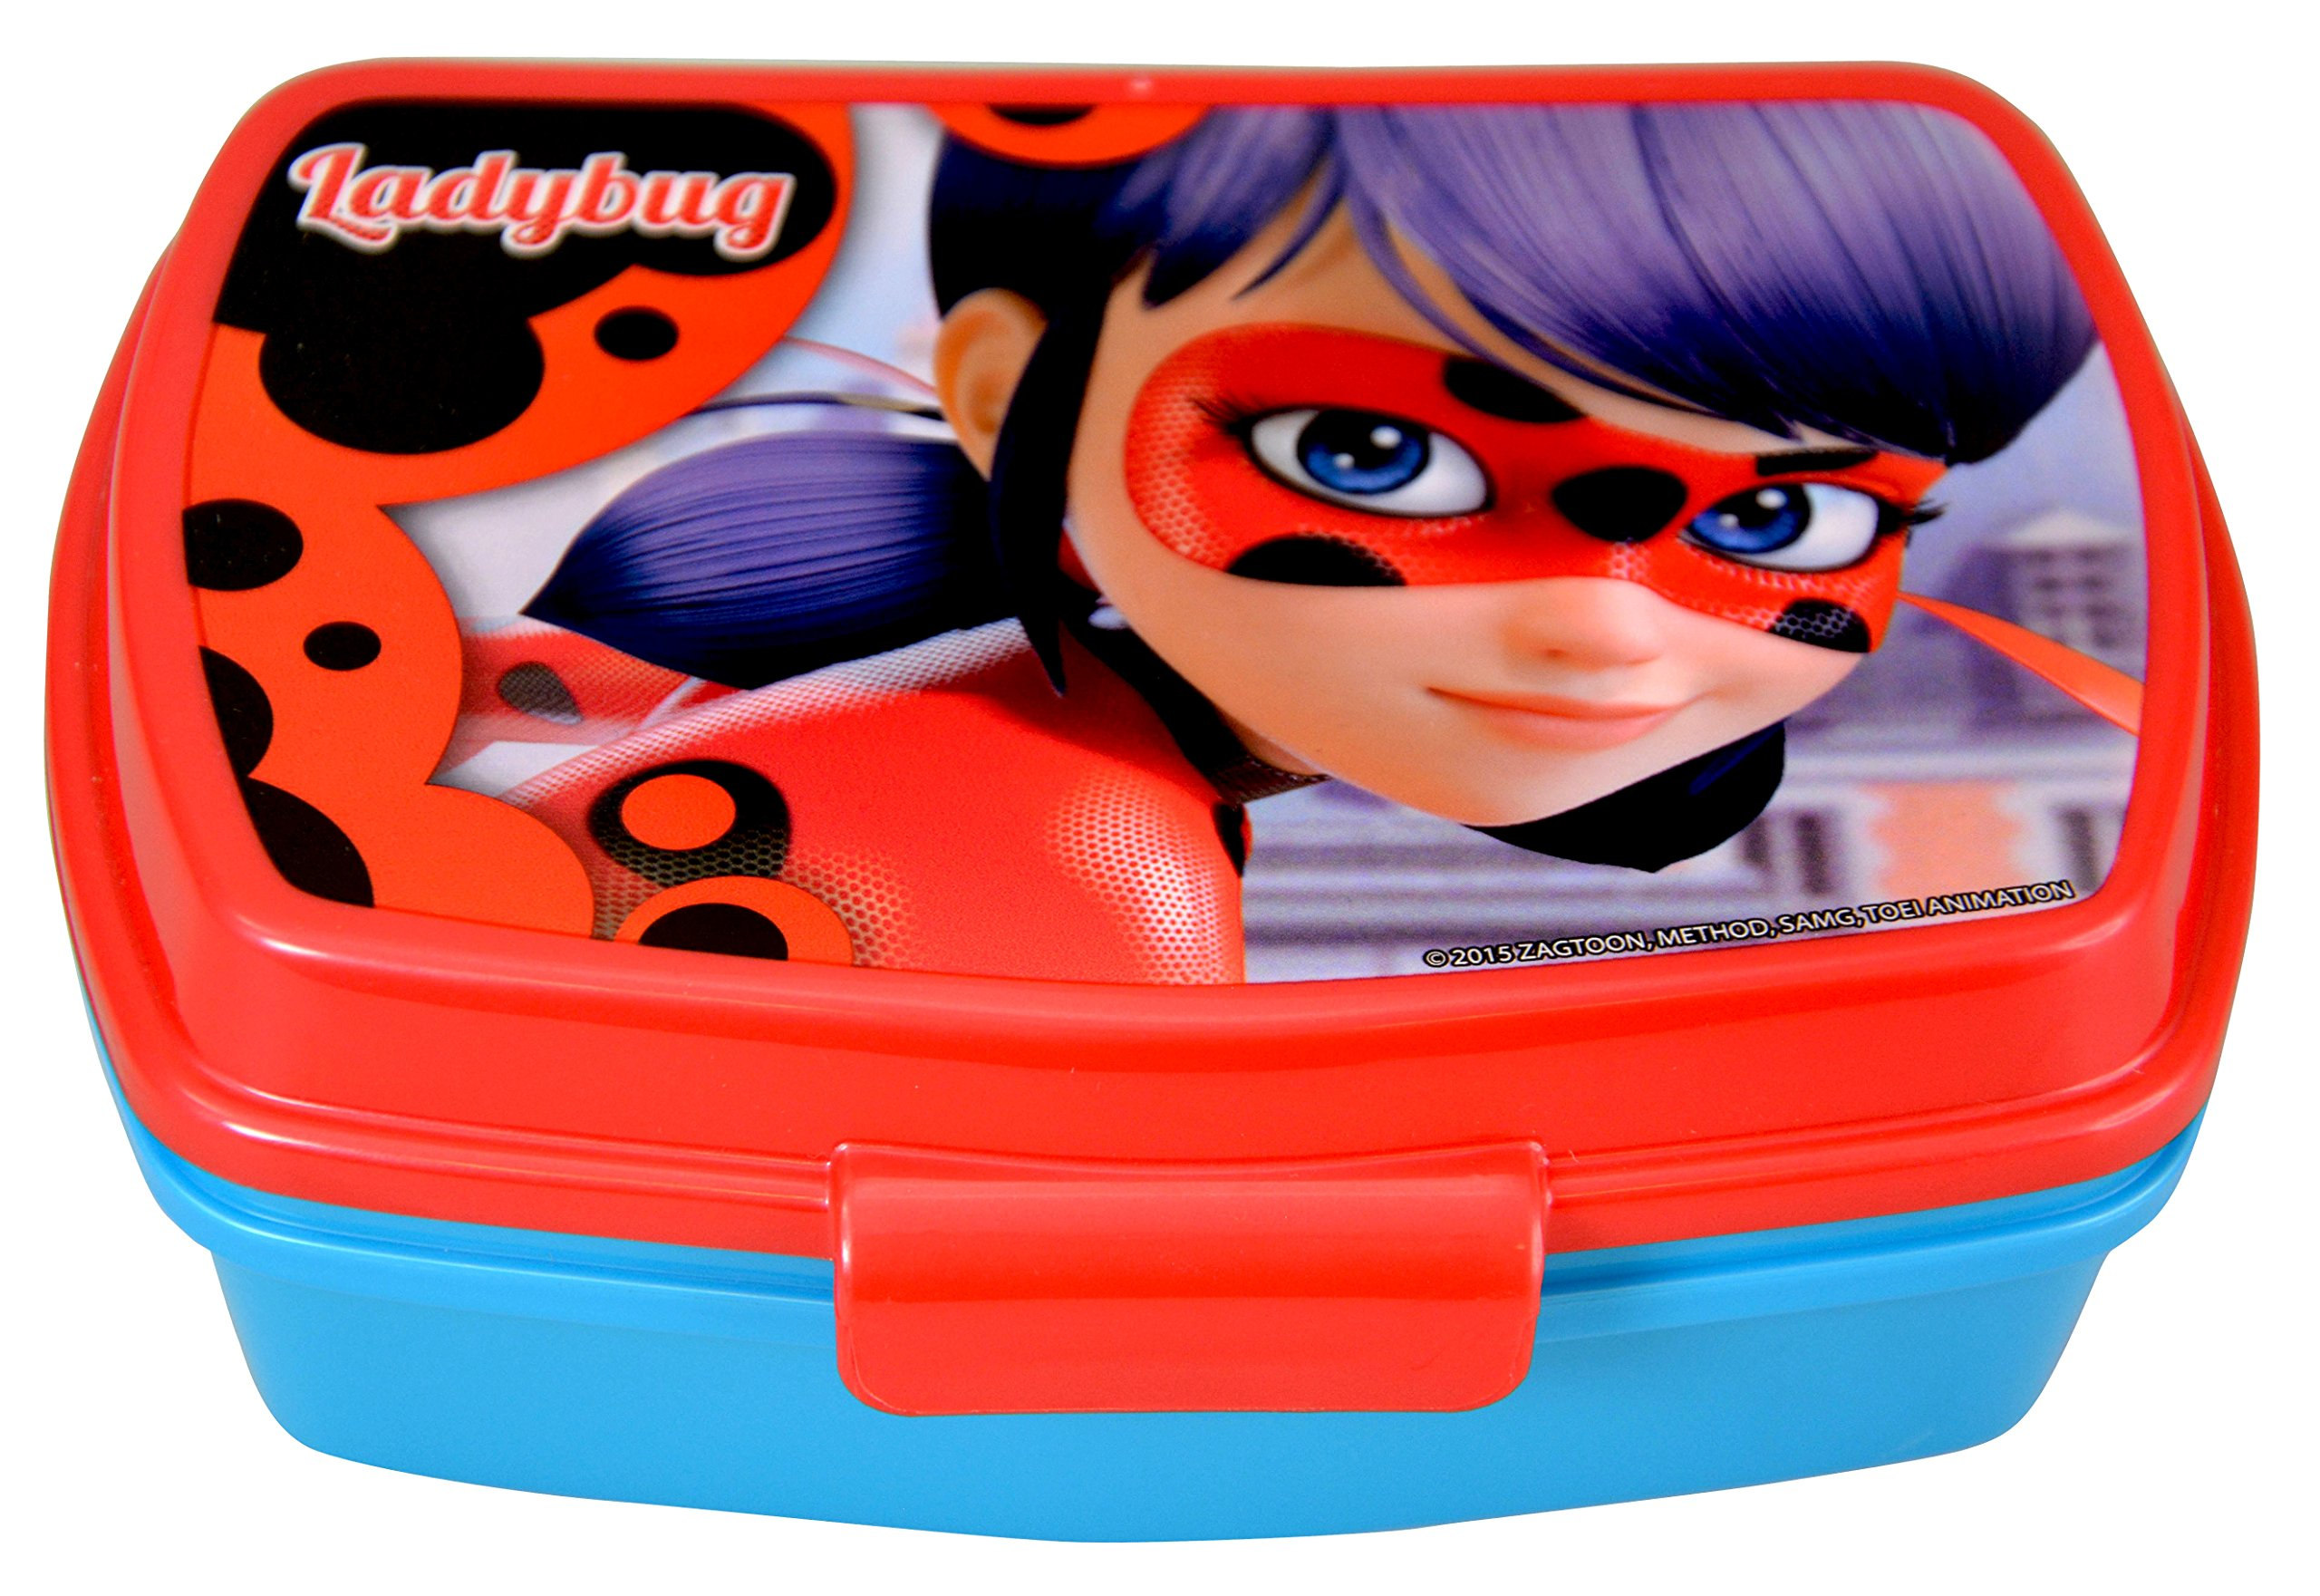 Miraculous Ladybug On The Go School Set- Drinking Cup with Straw, Food Container, Folder, Notebook (Red) by Miraculous